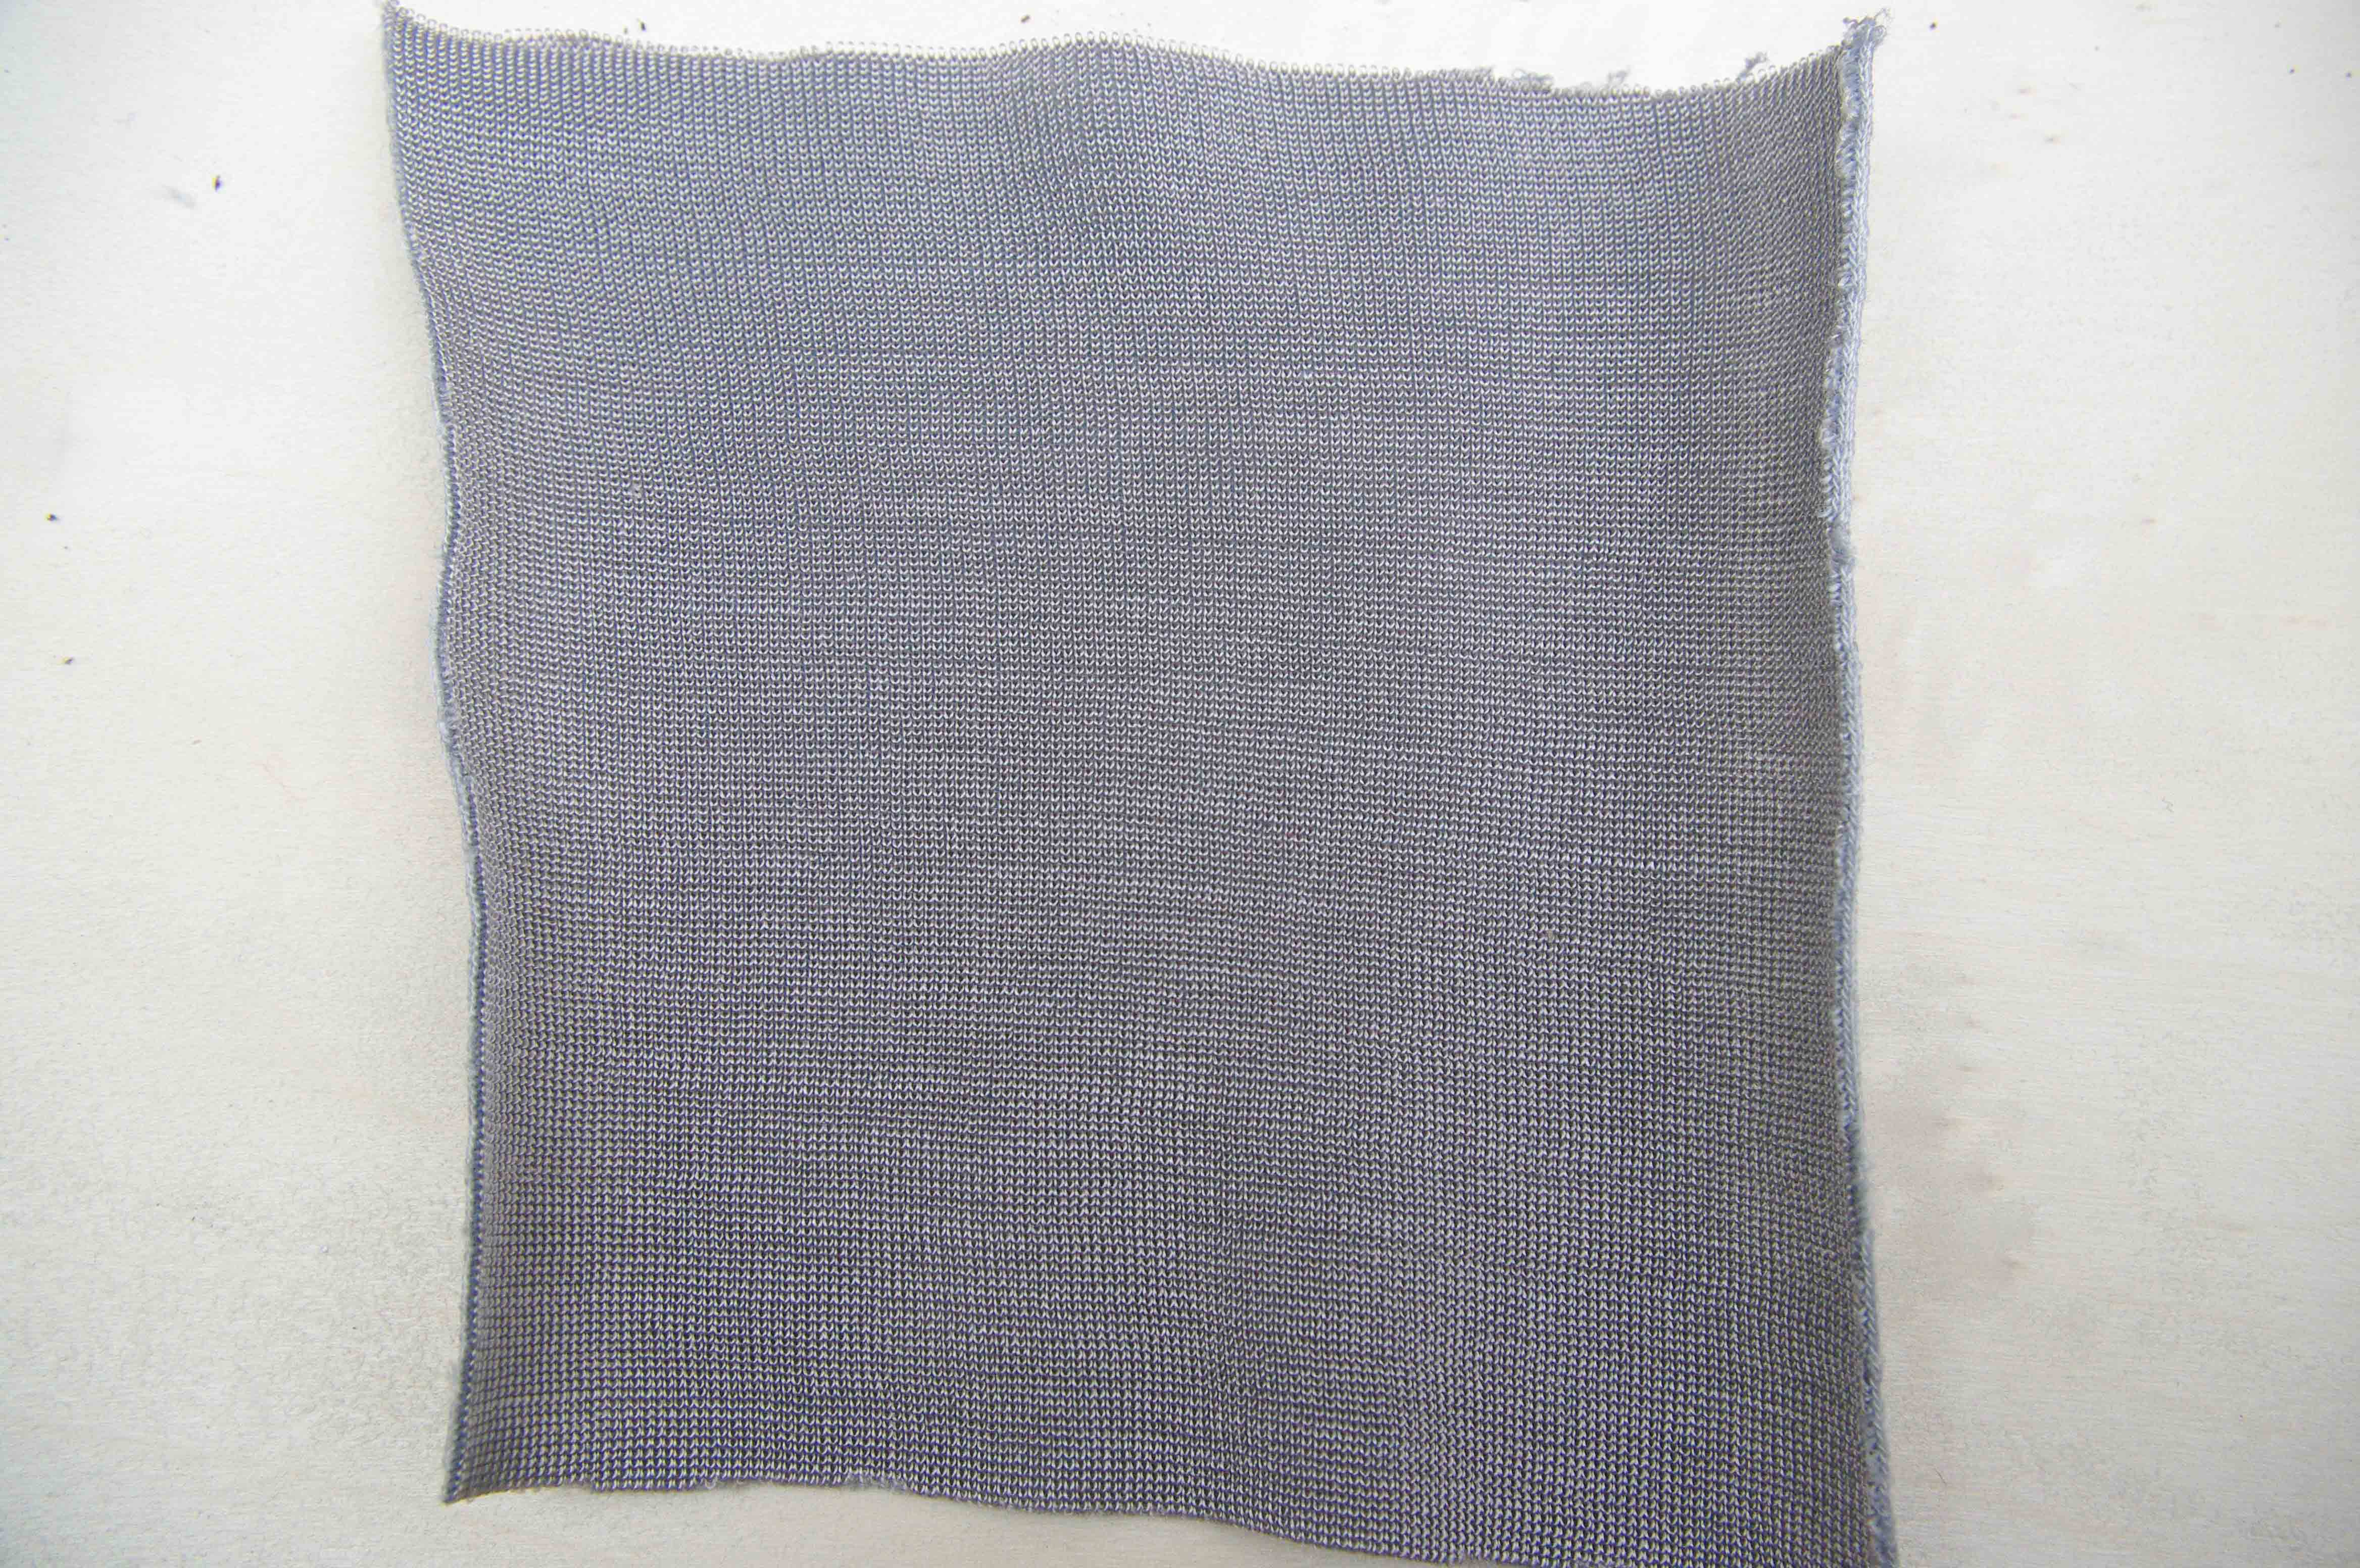 resistive_knitting_viscoseside